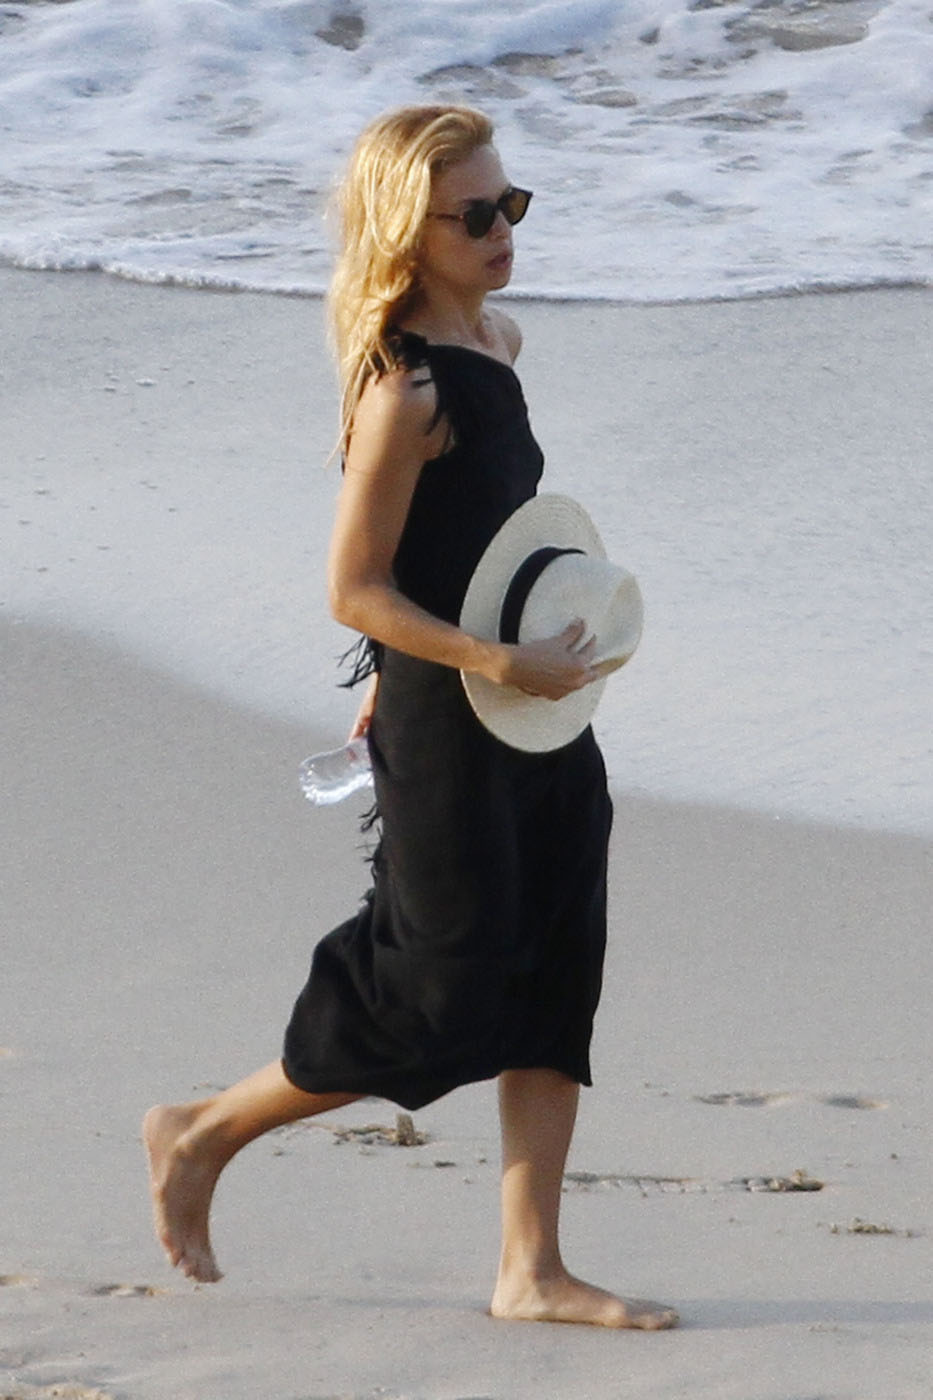 Rachel Zoe hangs out at Flamands beach in St Barts with her husband Rodger Berman and her son Skylar